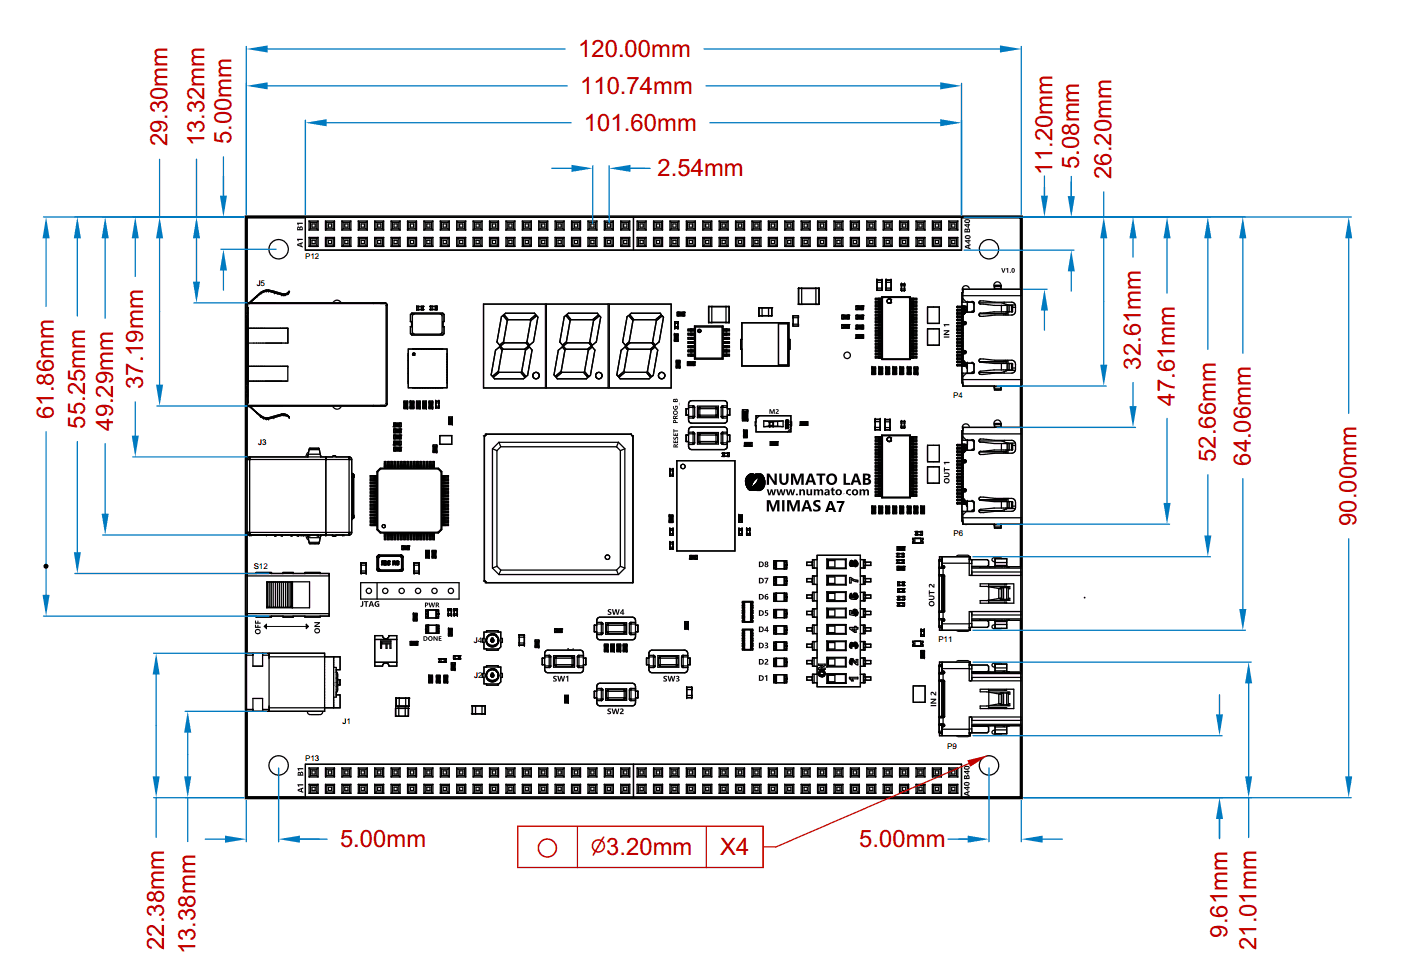 Mimas Artix 7 Fpga Development Board With Ddr Sdram And Gigabit Displayport Schematic 8physical Dimensions